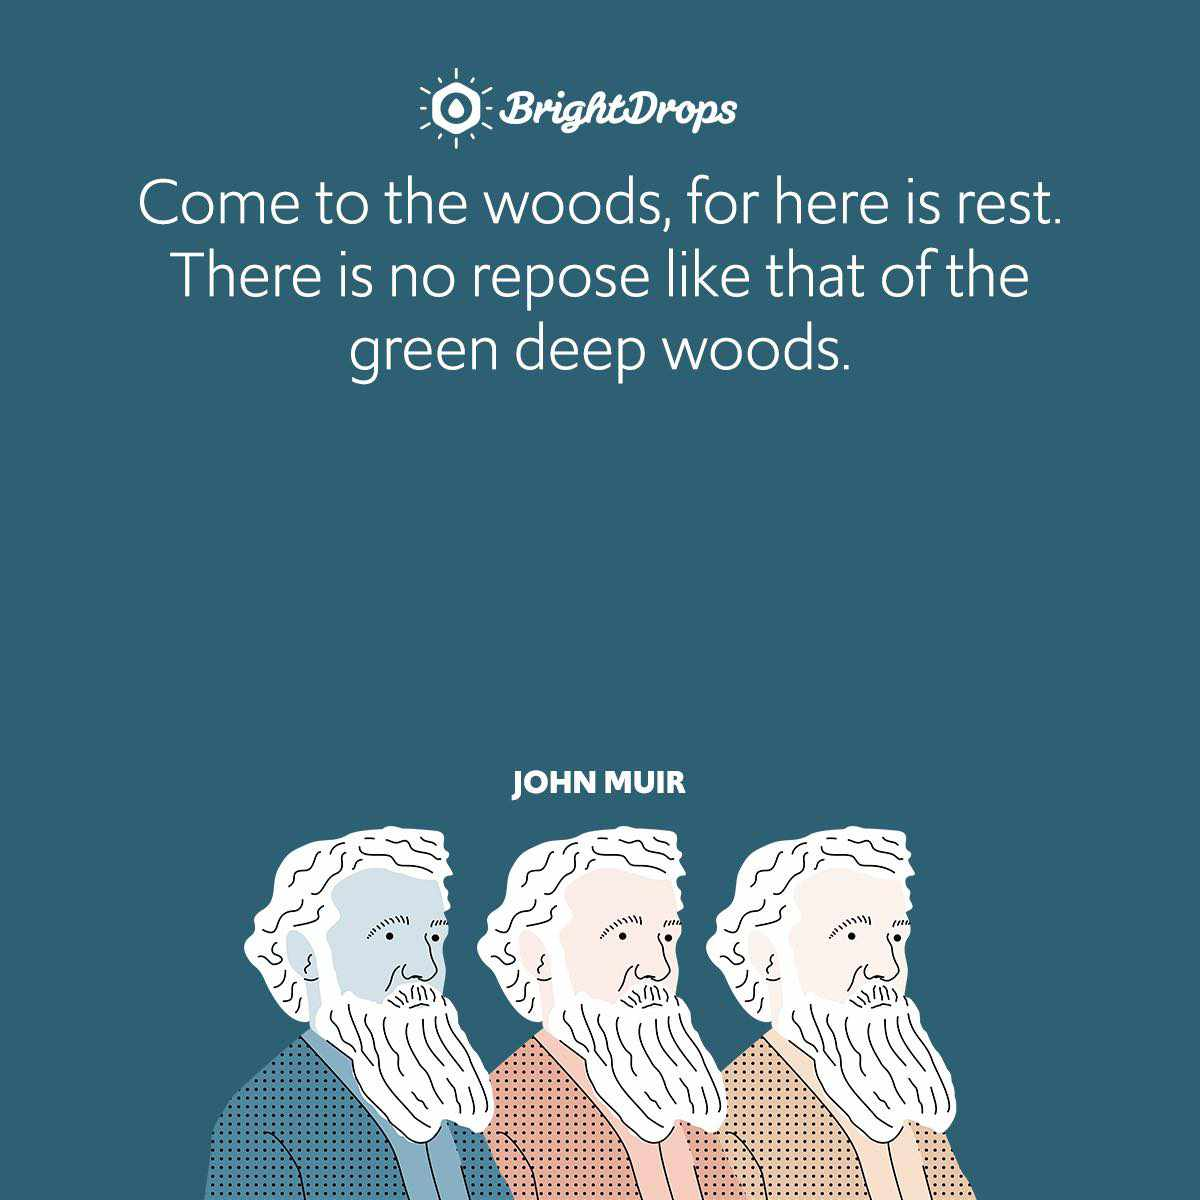 Come to the woods, for here is rest. There is no repose like that of the green deep woods.